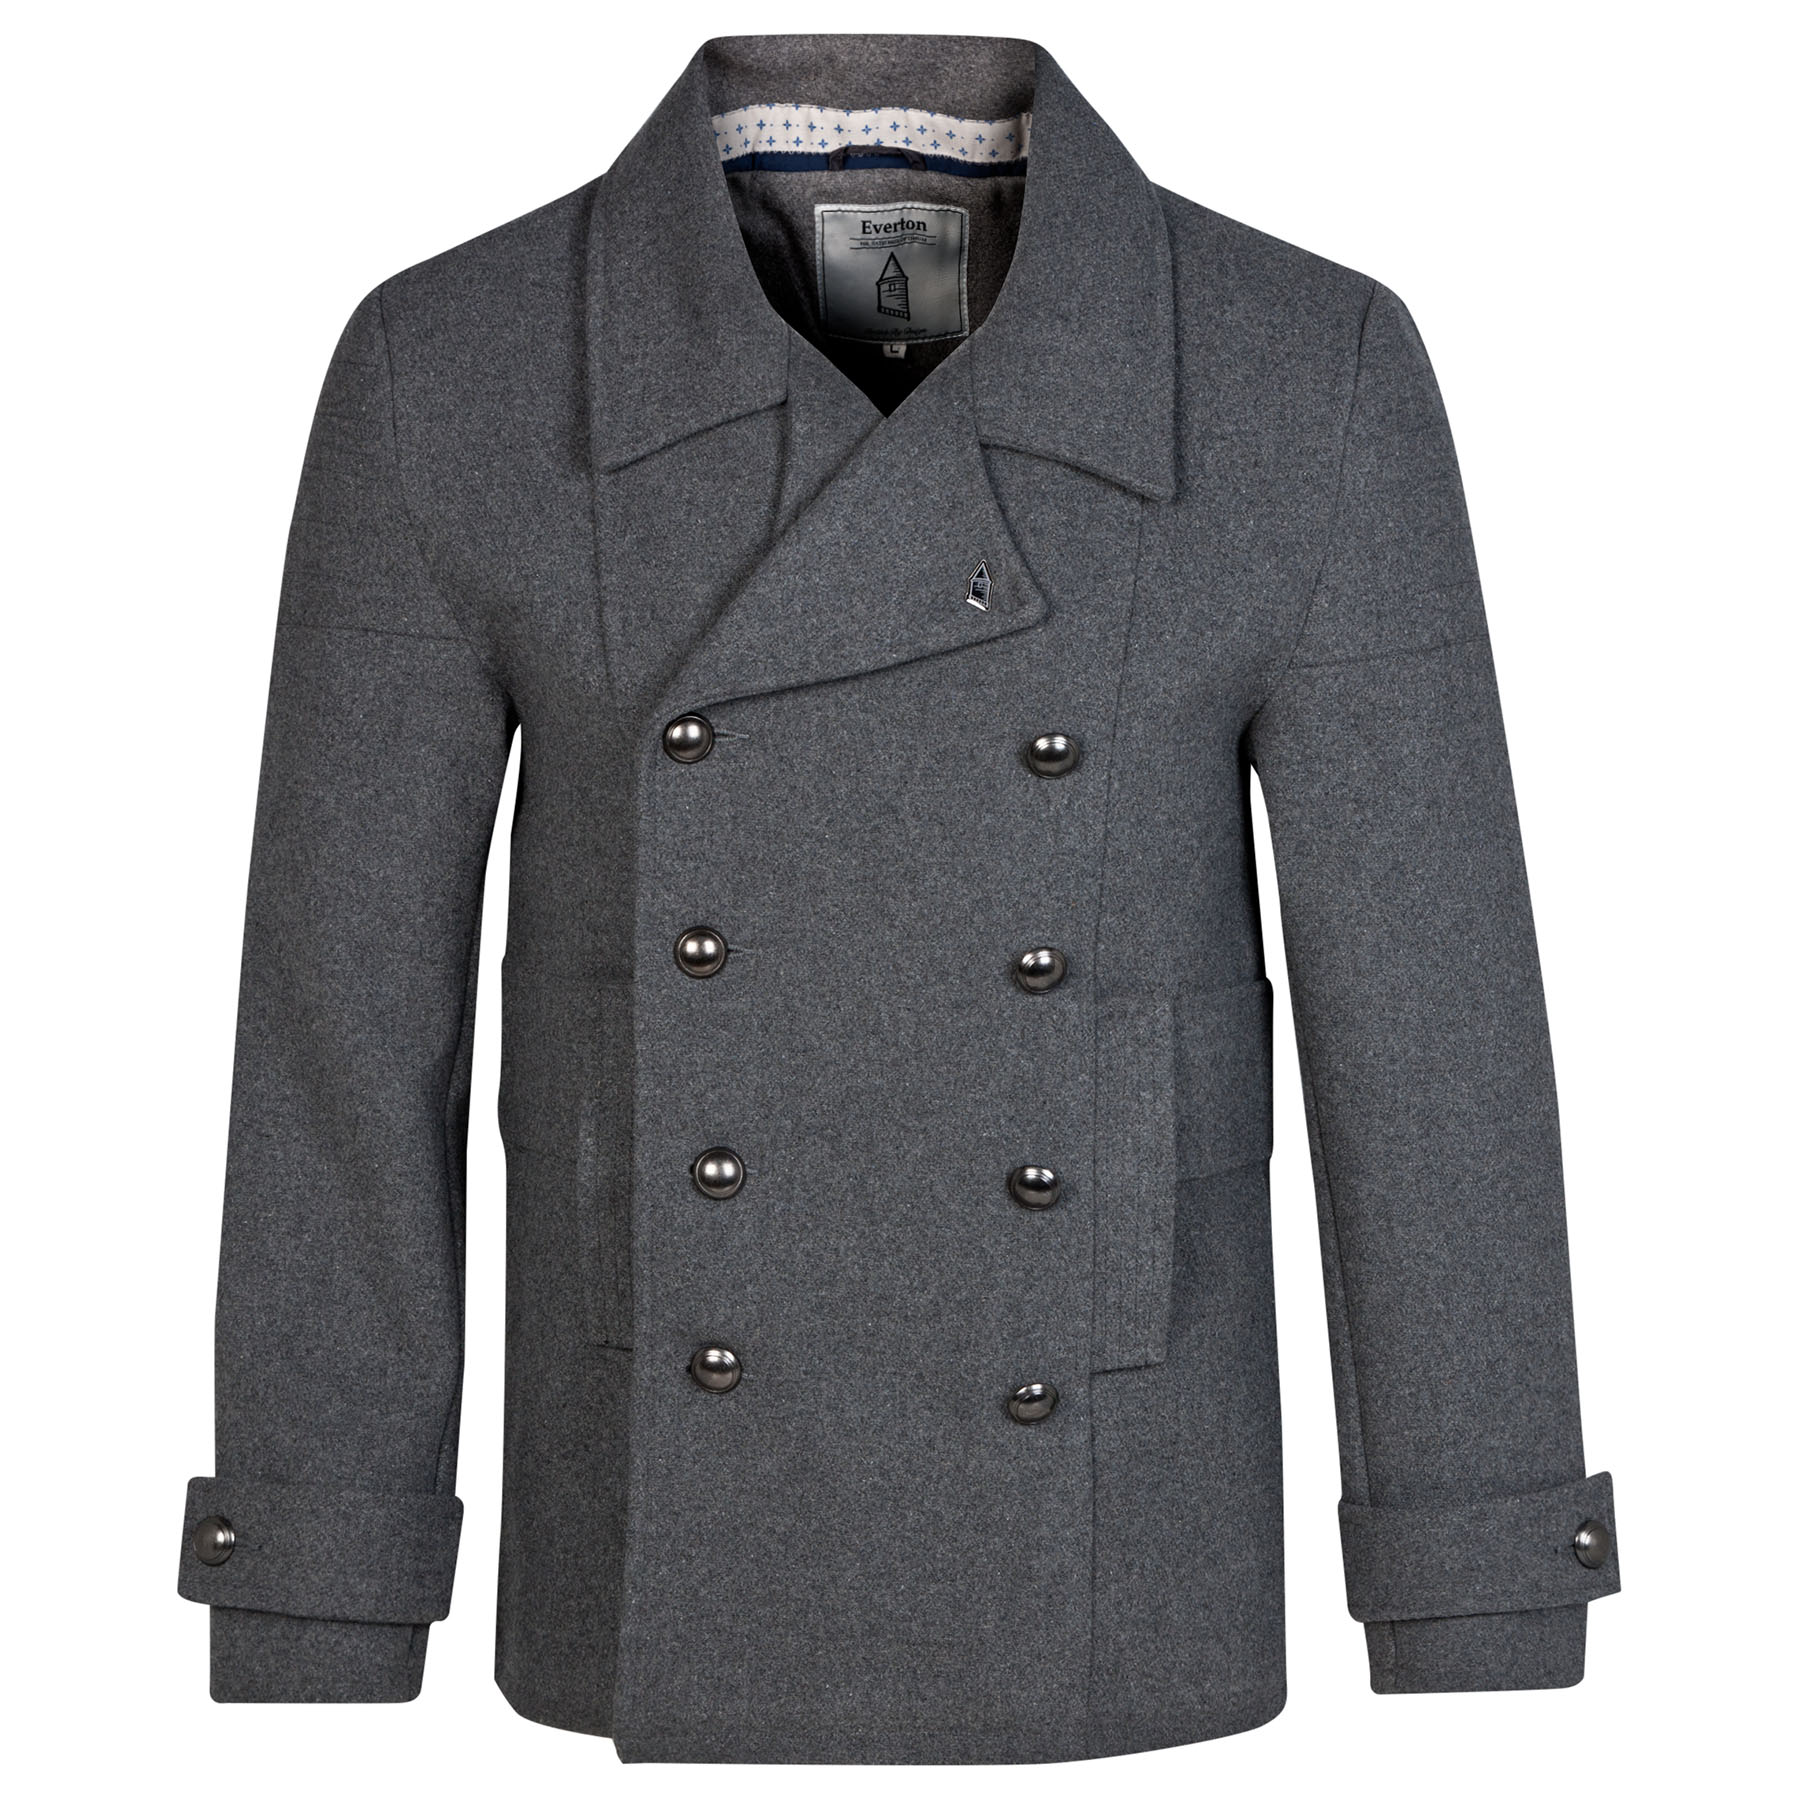 Everton Pea Coat - Charcoal - Mens